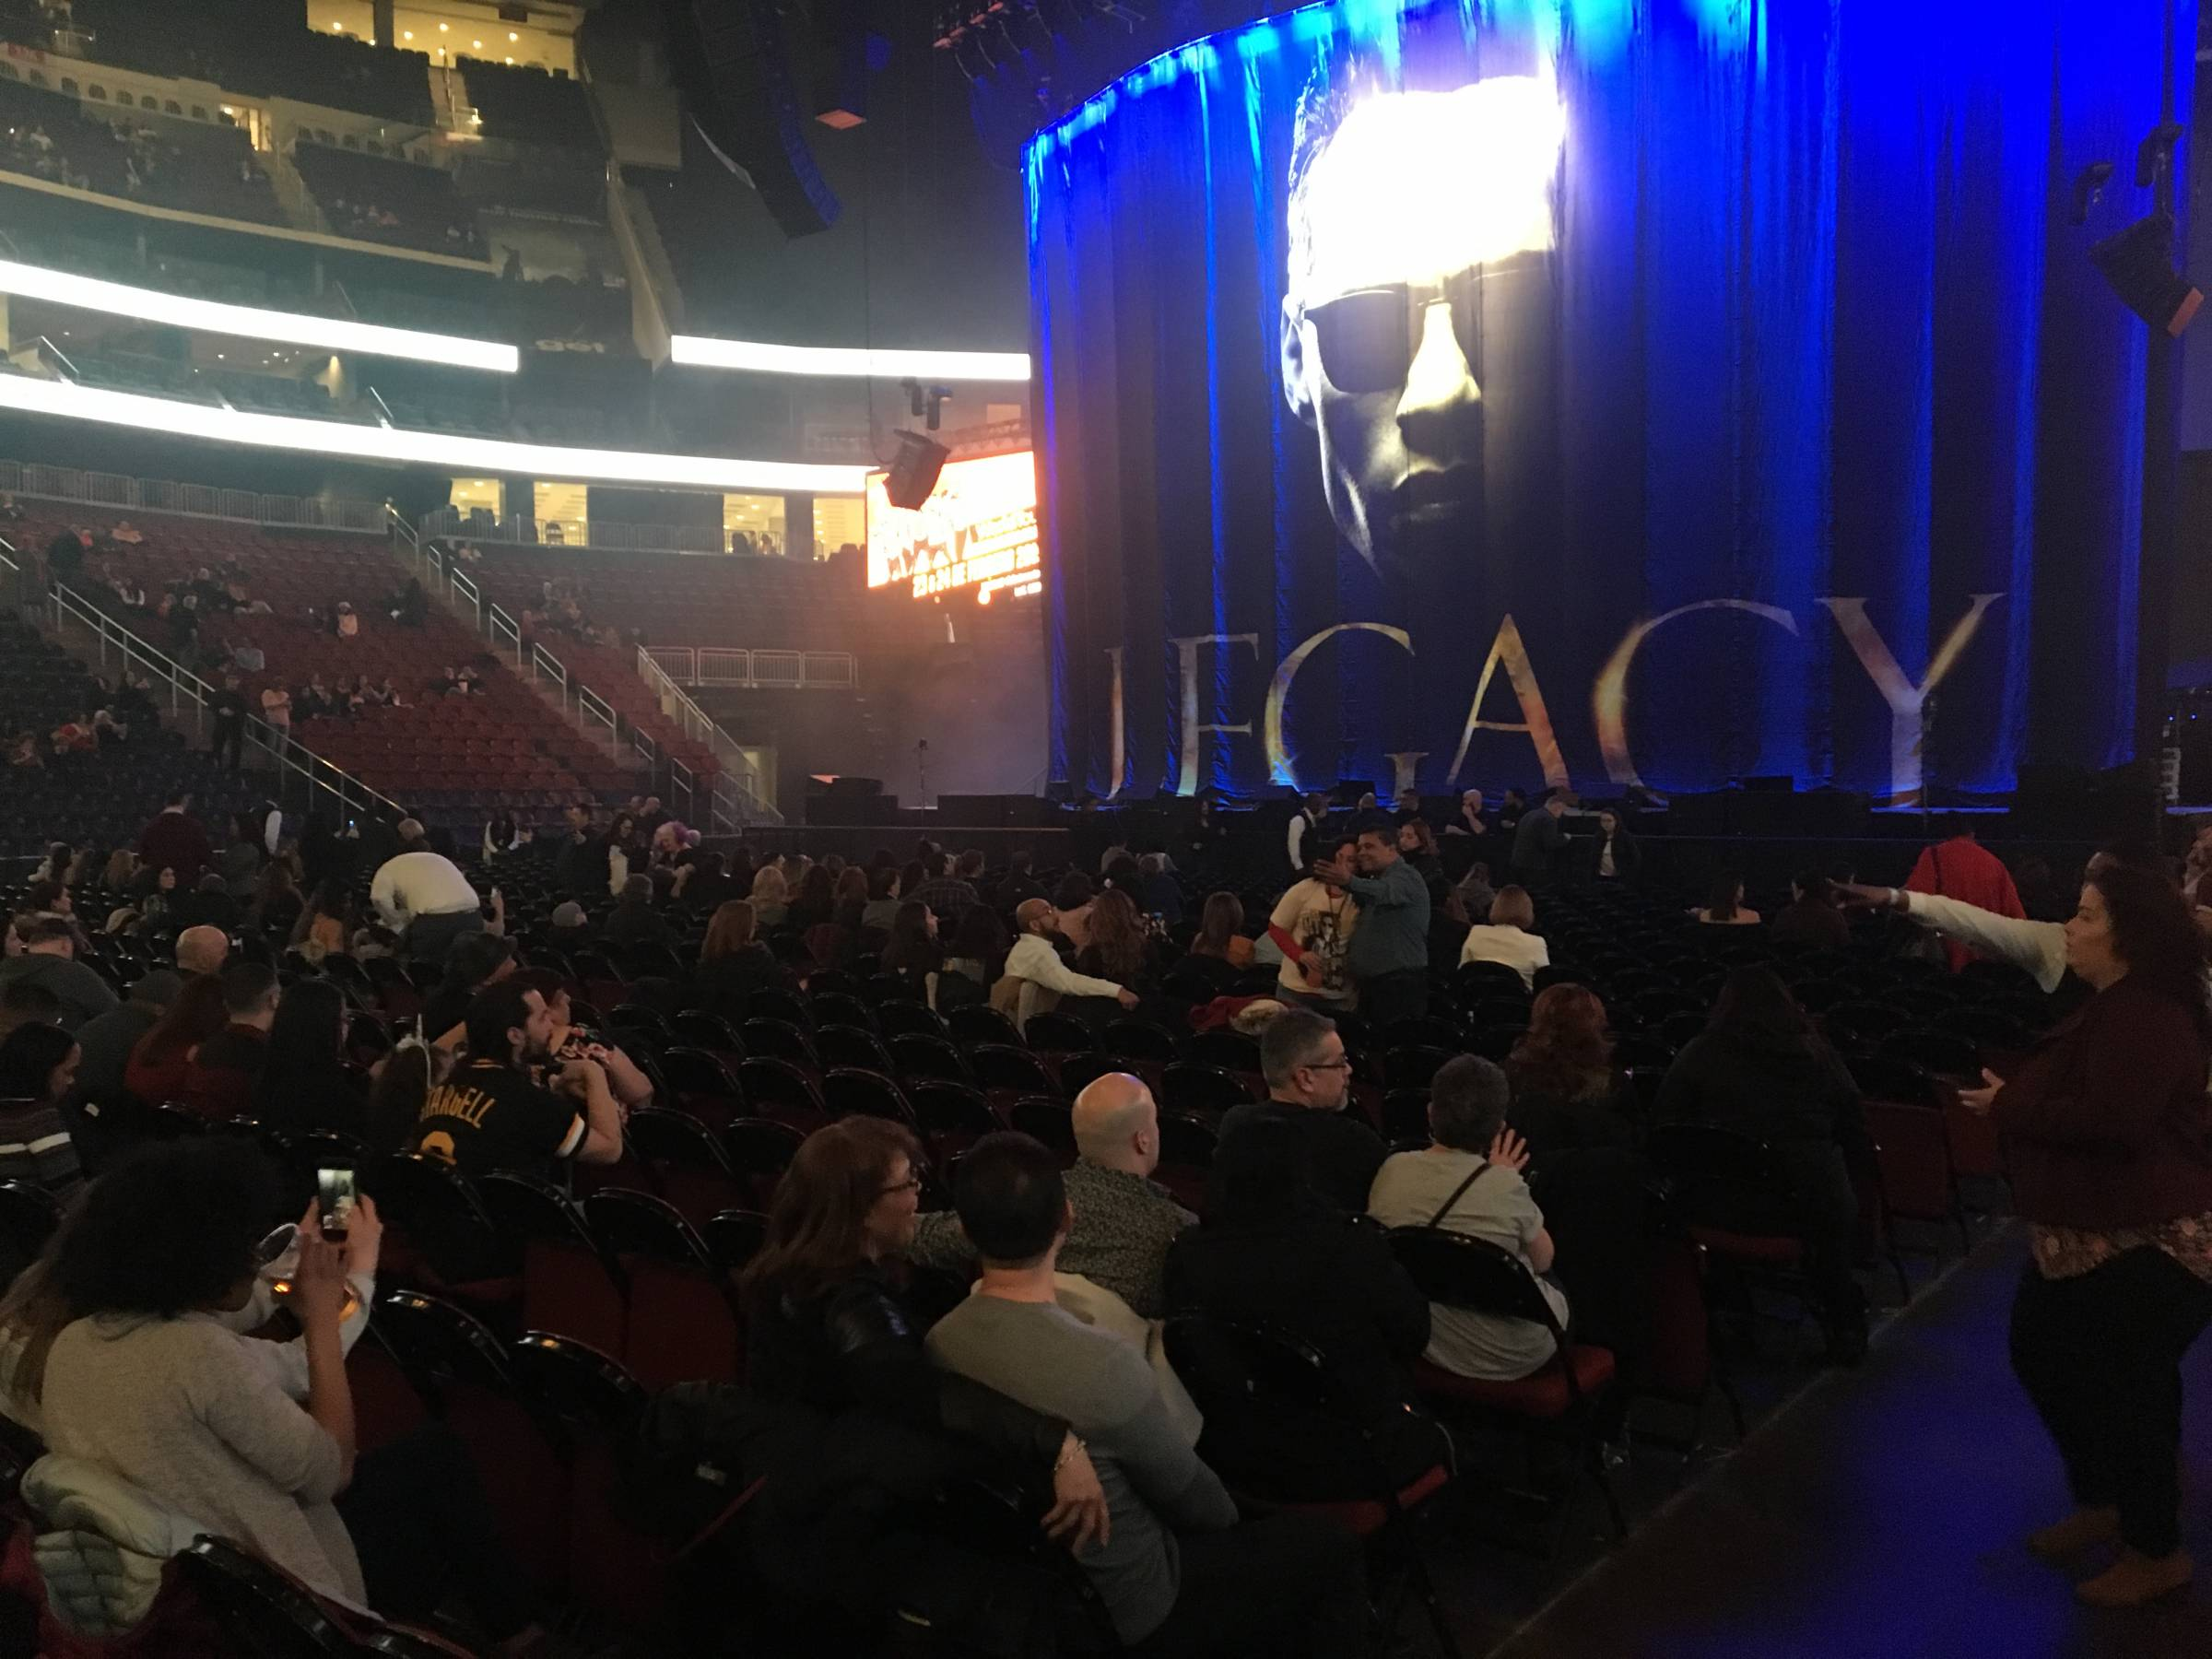 Prudential Center Floor E Concert Seating